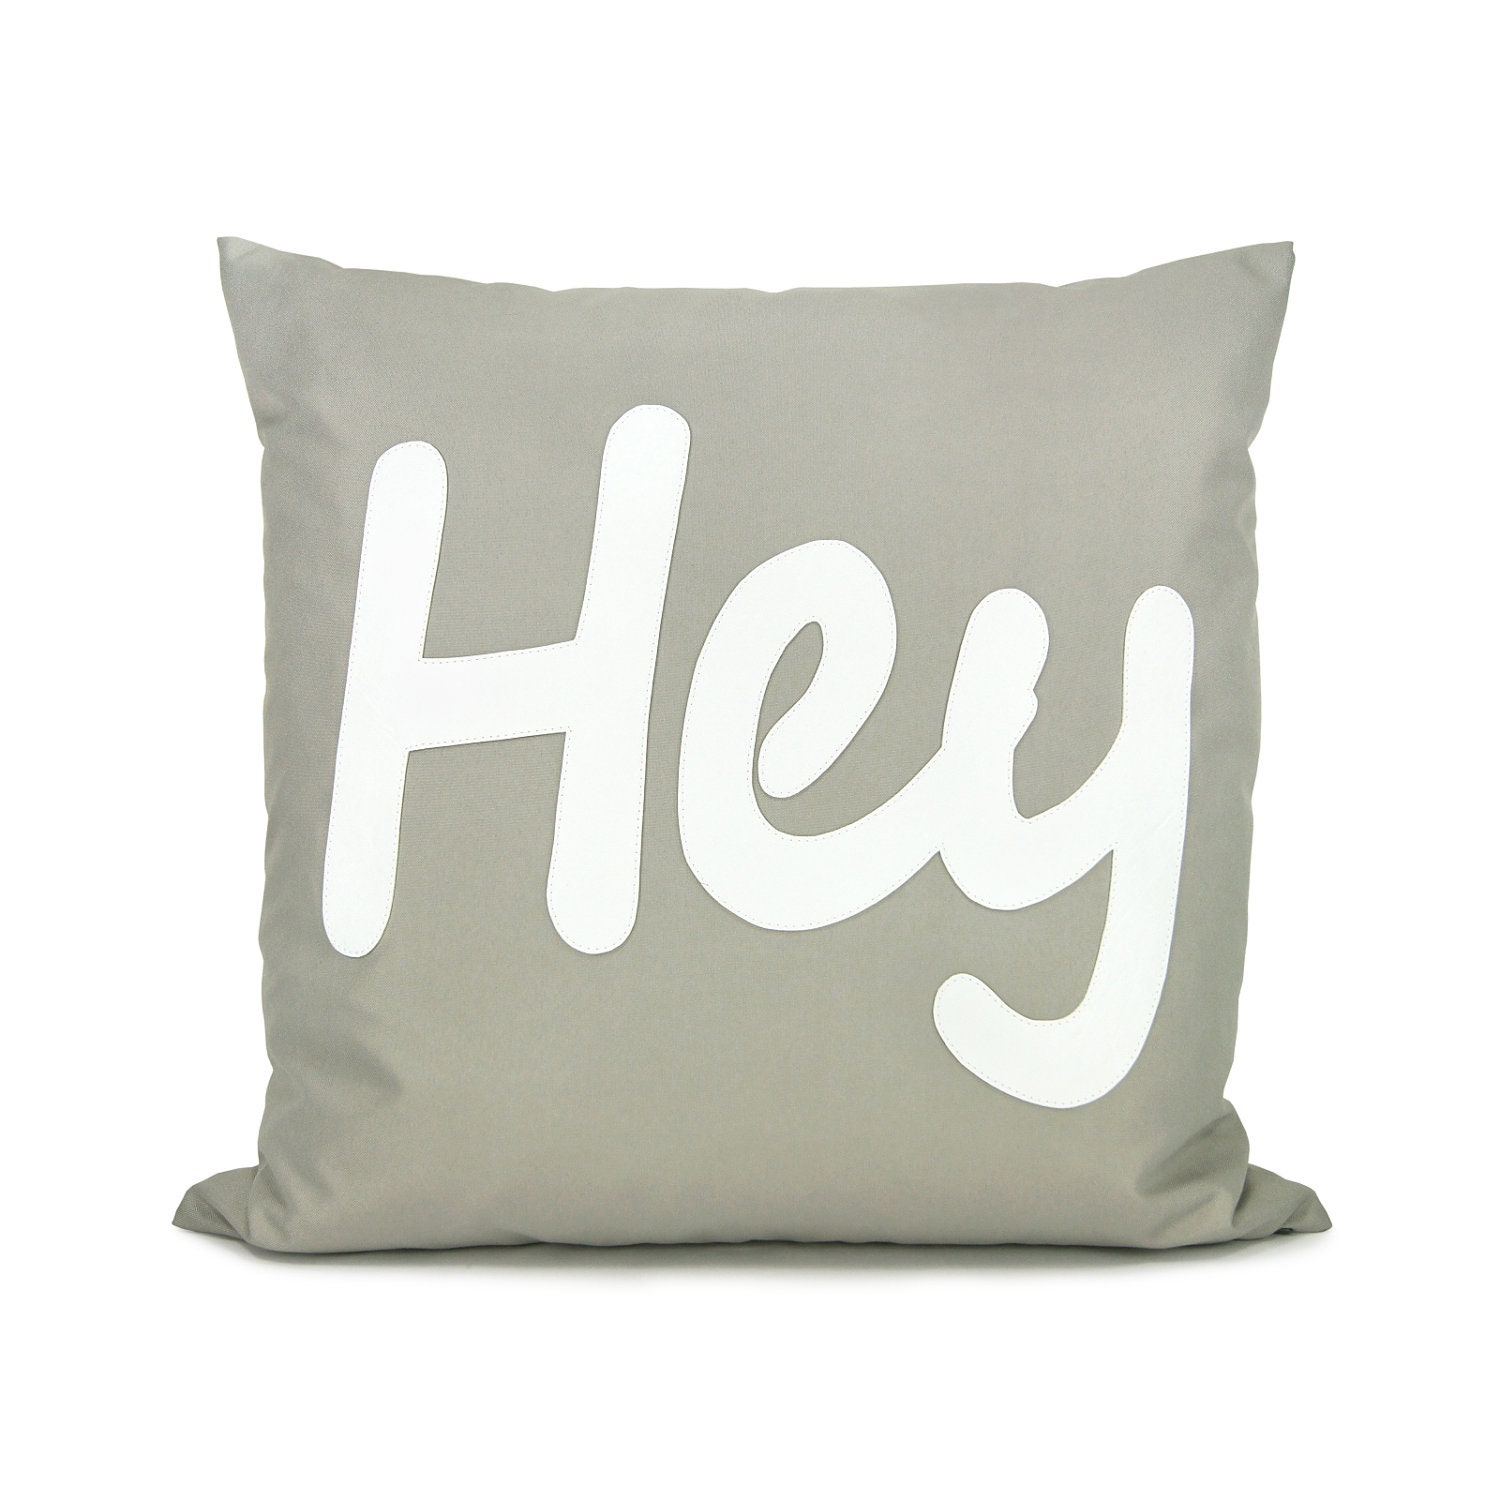 Gray and white pillow cover - White HEY applique on grey canvas, outdoor word decorative pillow cover - 18x18 accent pillow cover - ClassicByNature